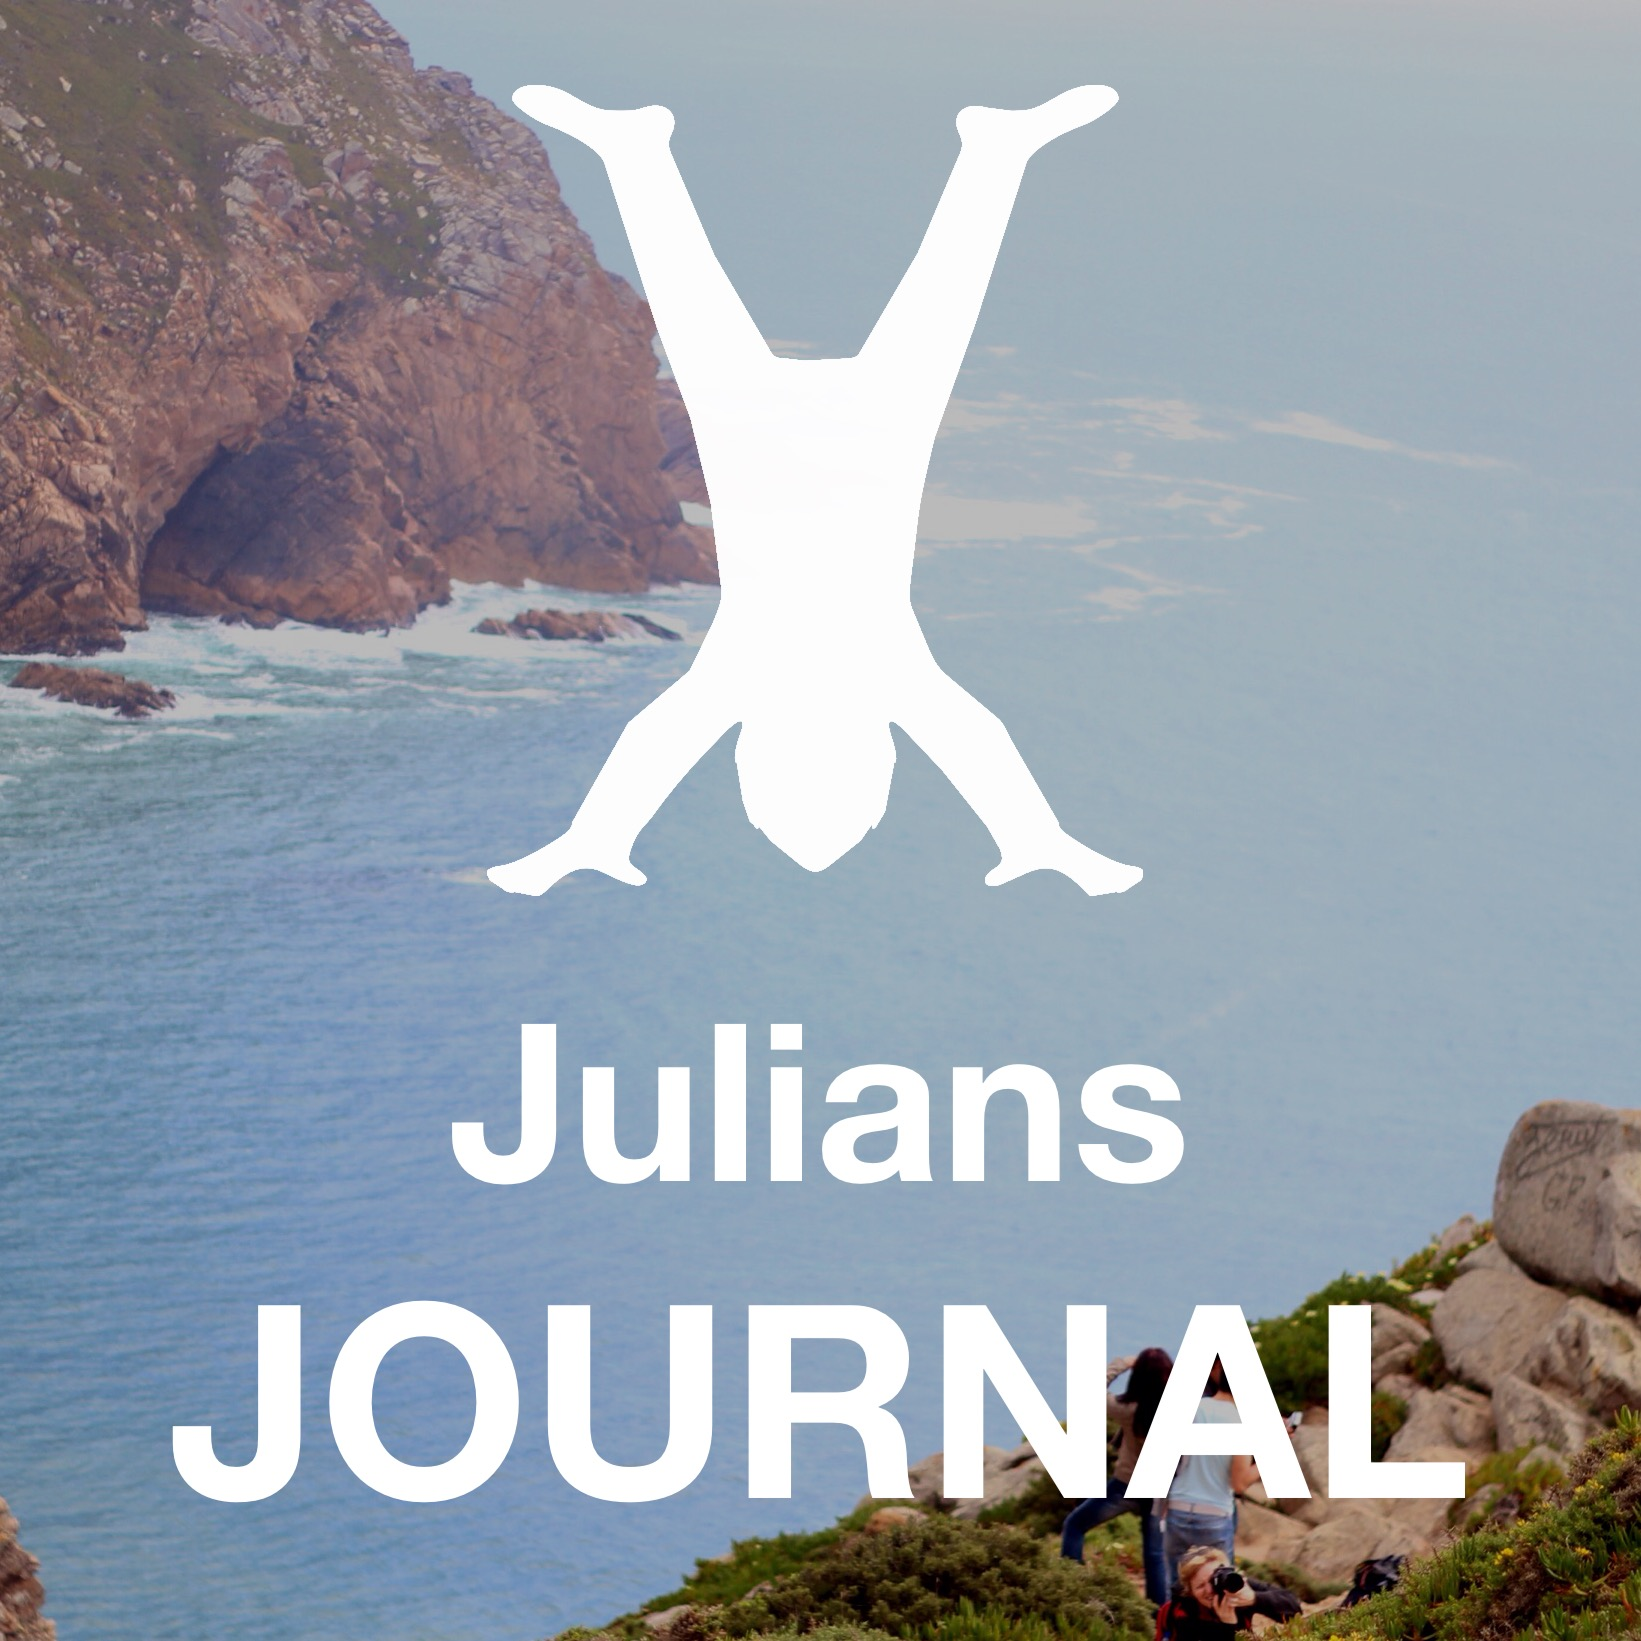 Julians Journal - Der Podcast zur Reise 15 Away